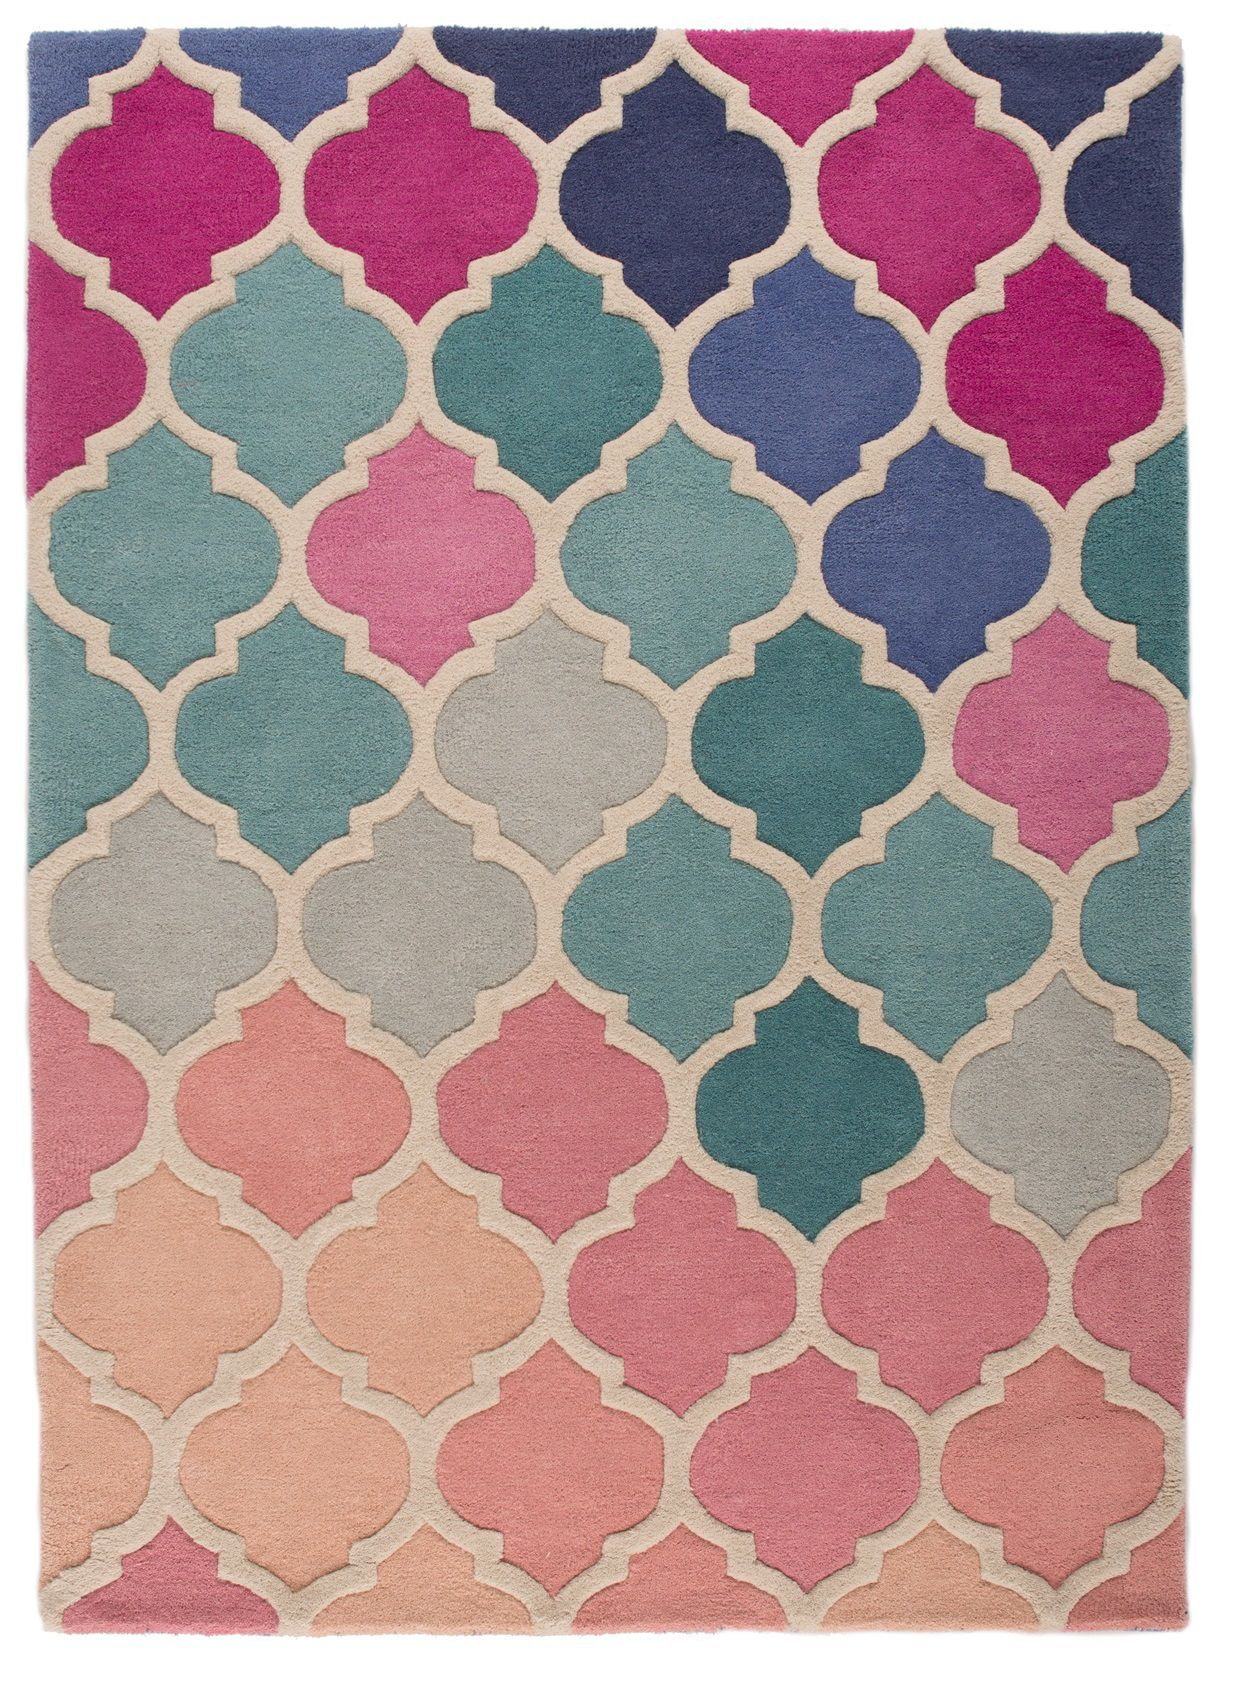 pink rugs   shop pink area rugs - house of fraser